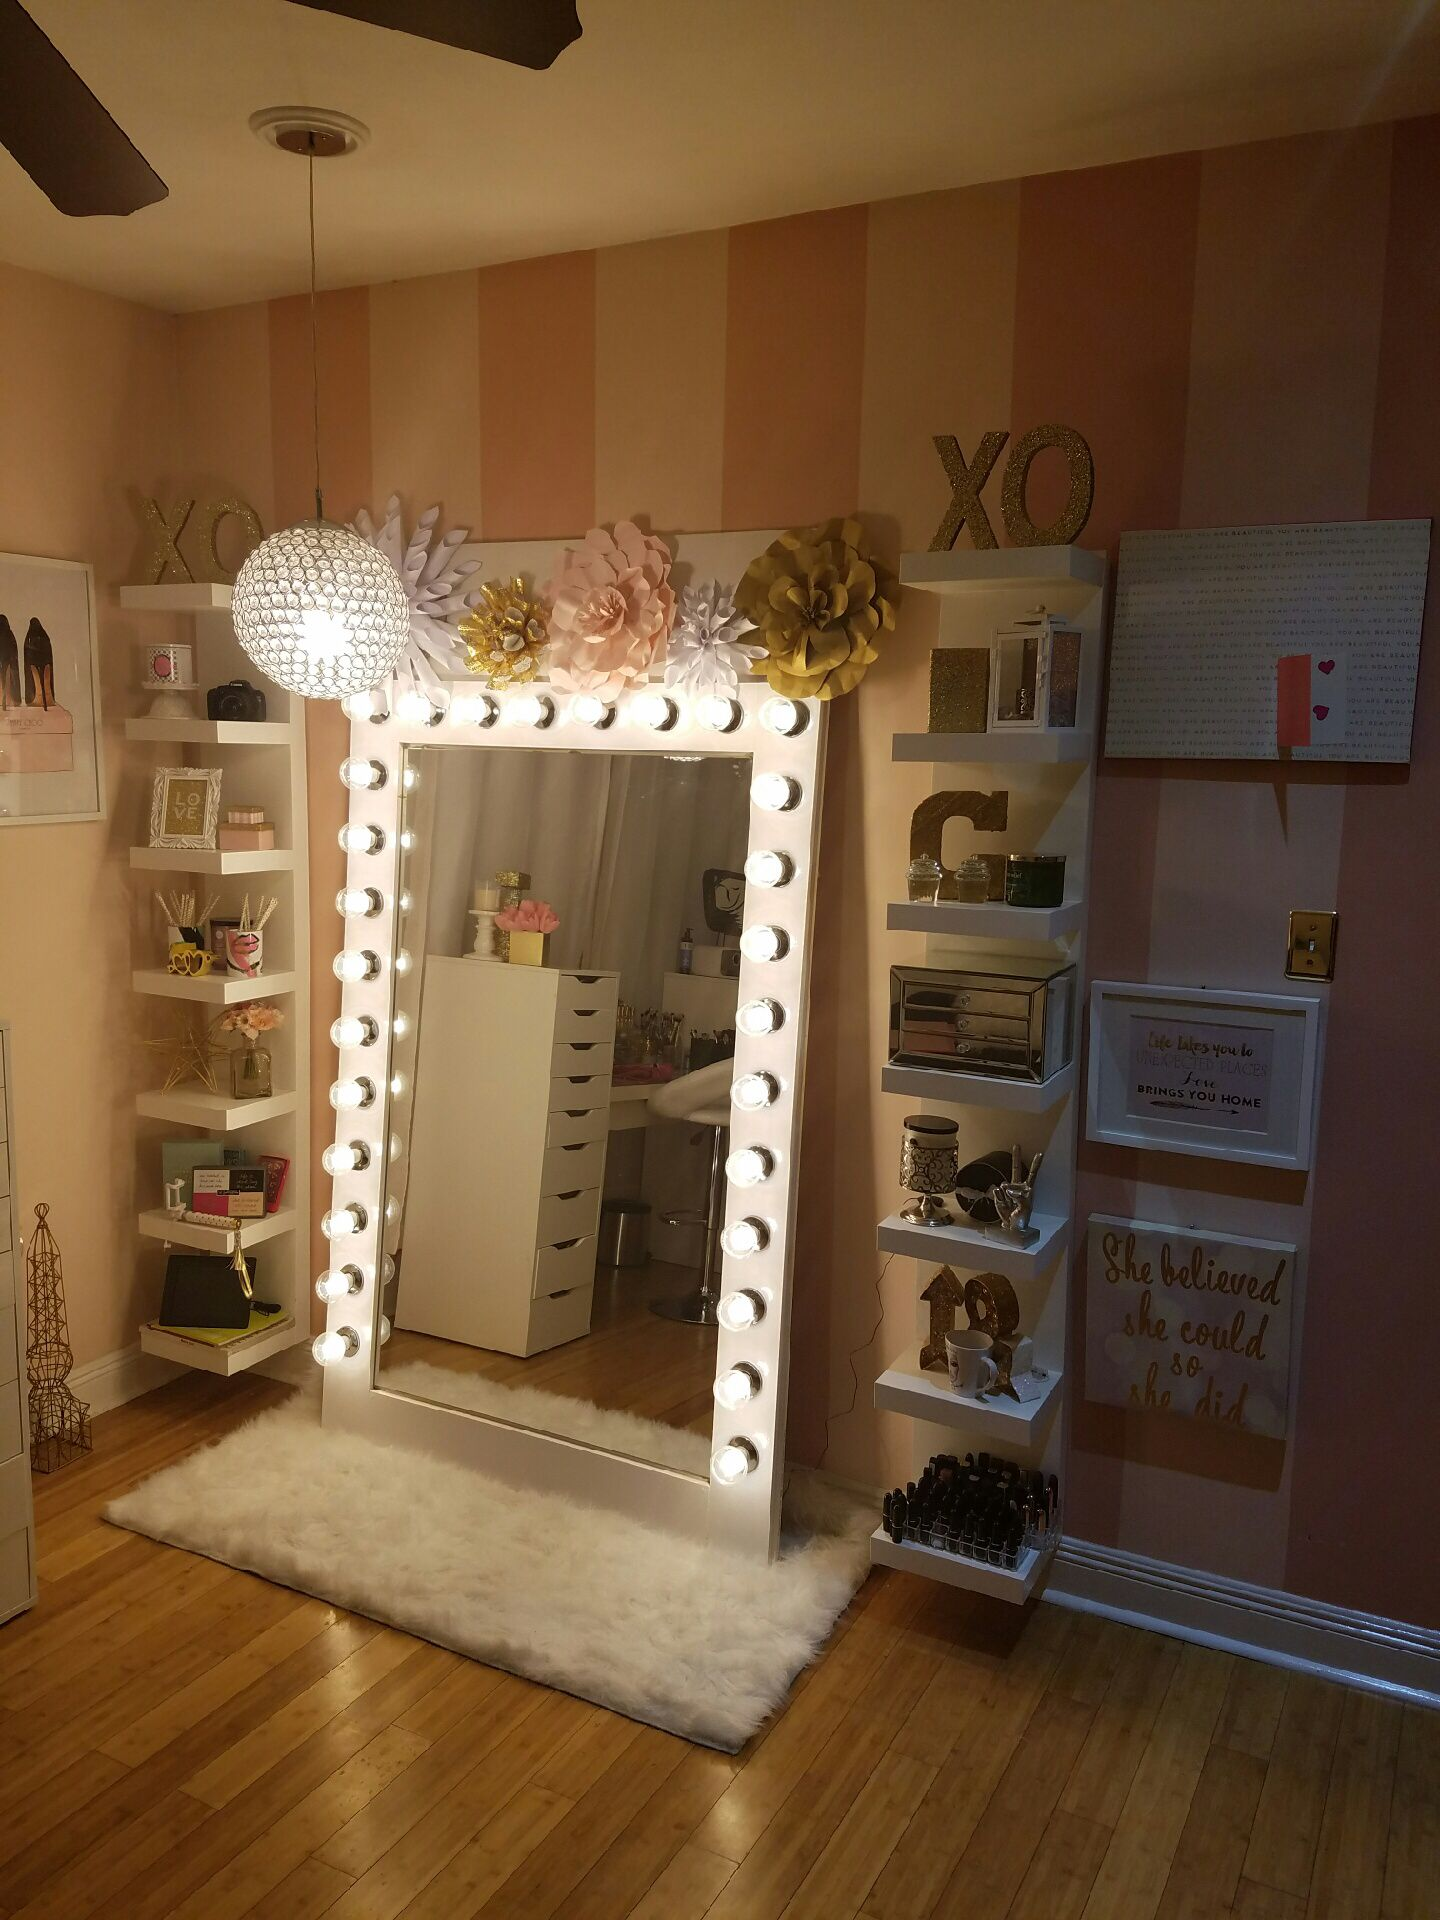 Pin by maggie ouhey on home u decor pinterest makeup storage